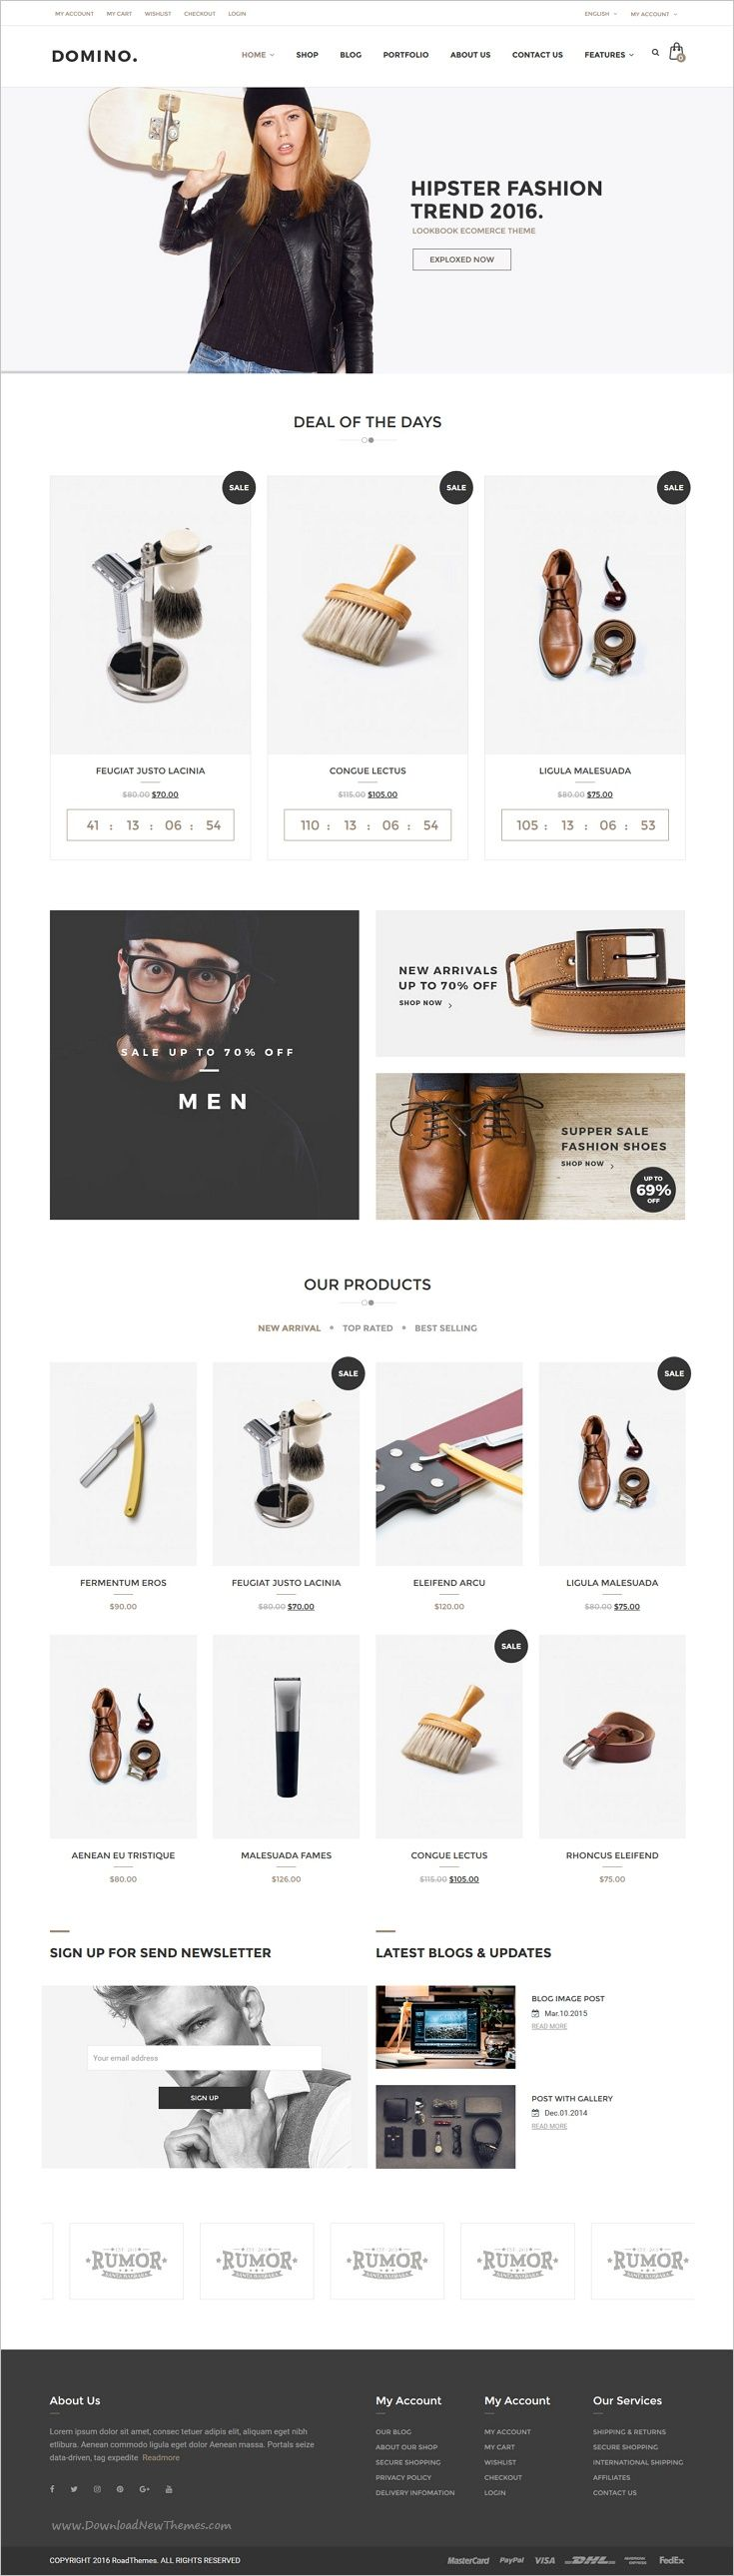 Domino is a wonderful 6in1 responsive #WordPress theme for #webmaster multipurpose eCommerce website download now➩ https://themeforest.net/item/domino-fashion-responsive-wordpress-theme/17908571?ref=Datasata